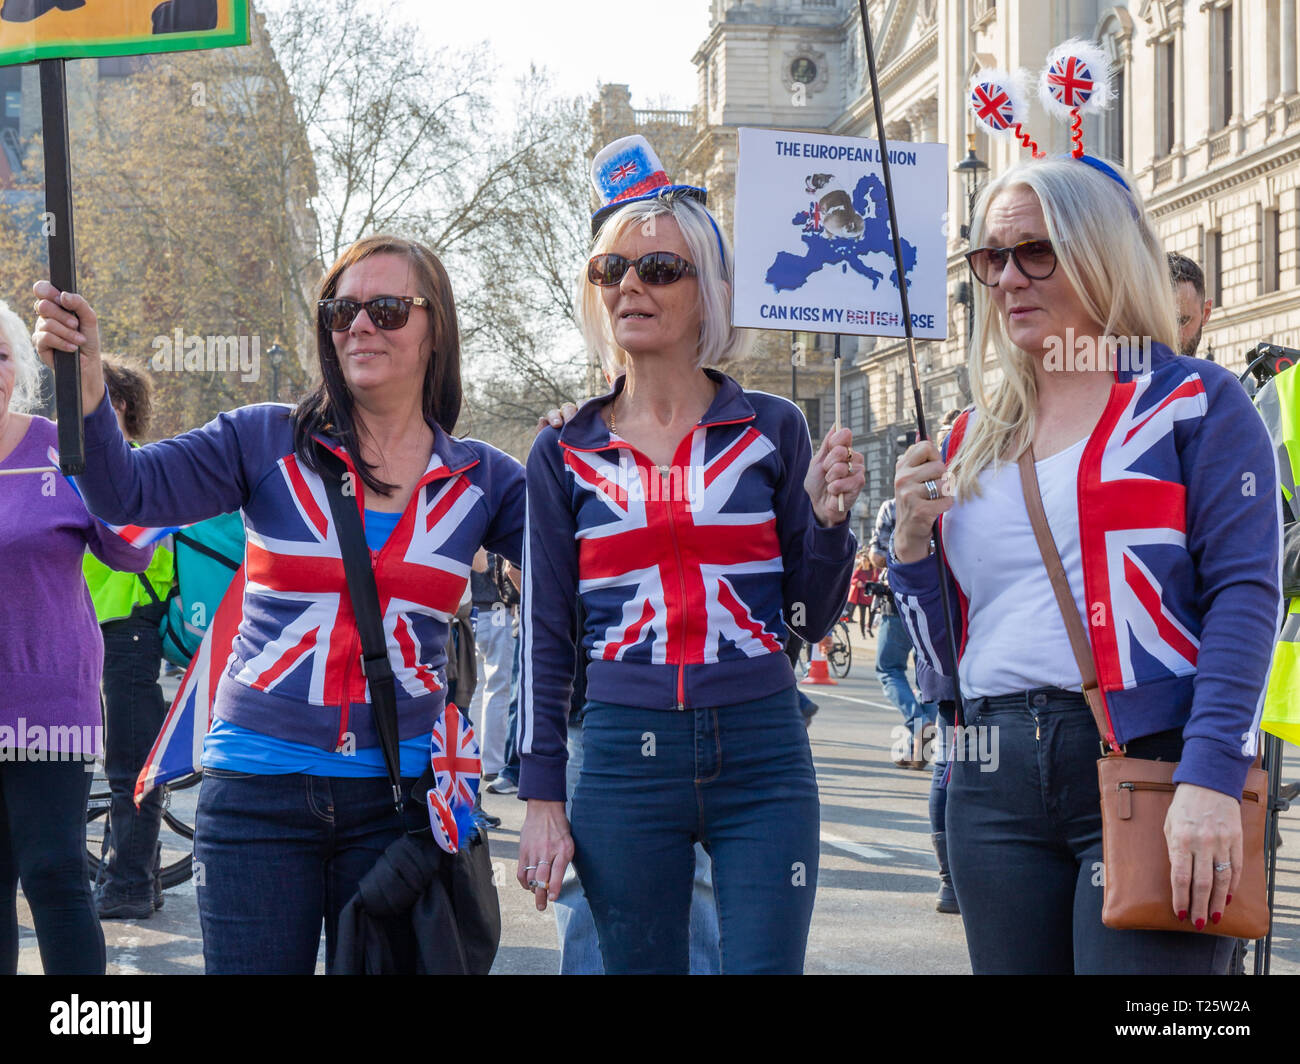 Westminster, London, UK; 29th March 2019; Three Female Pro-Brexit Demonstrator With Union Jack Clothing Pose for Photographers During March to Leave R - Stock Image